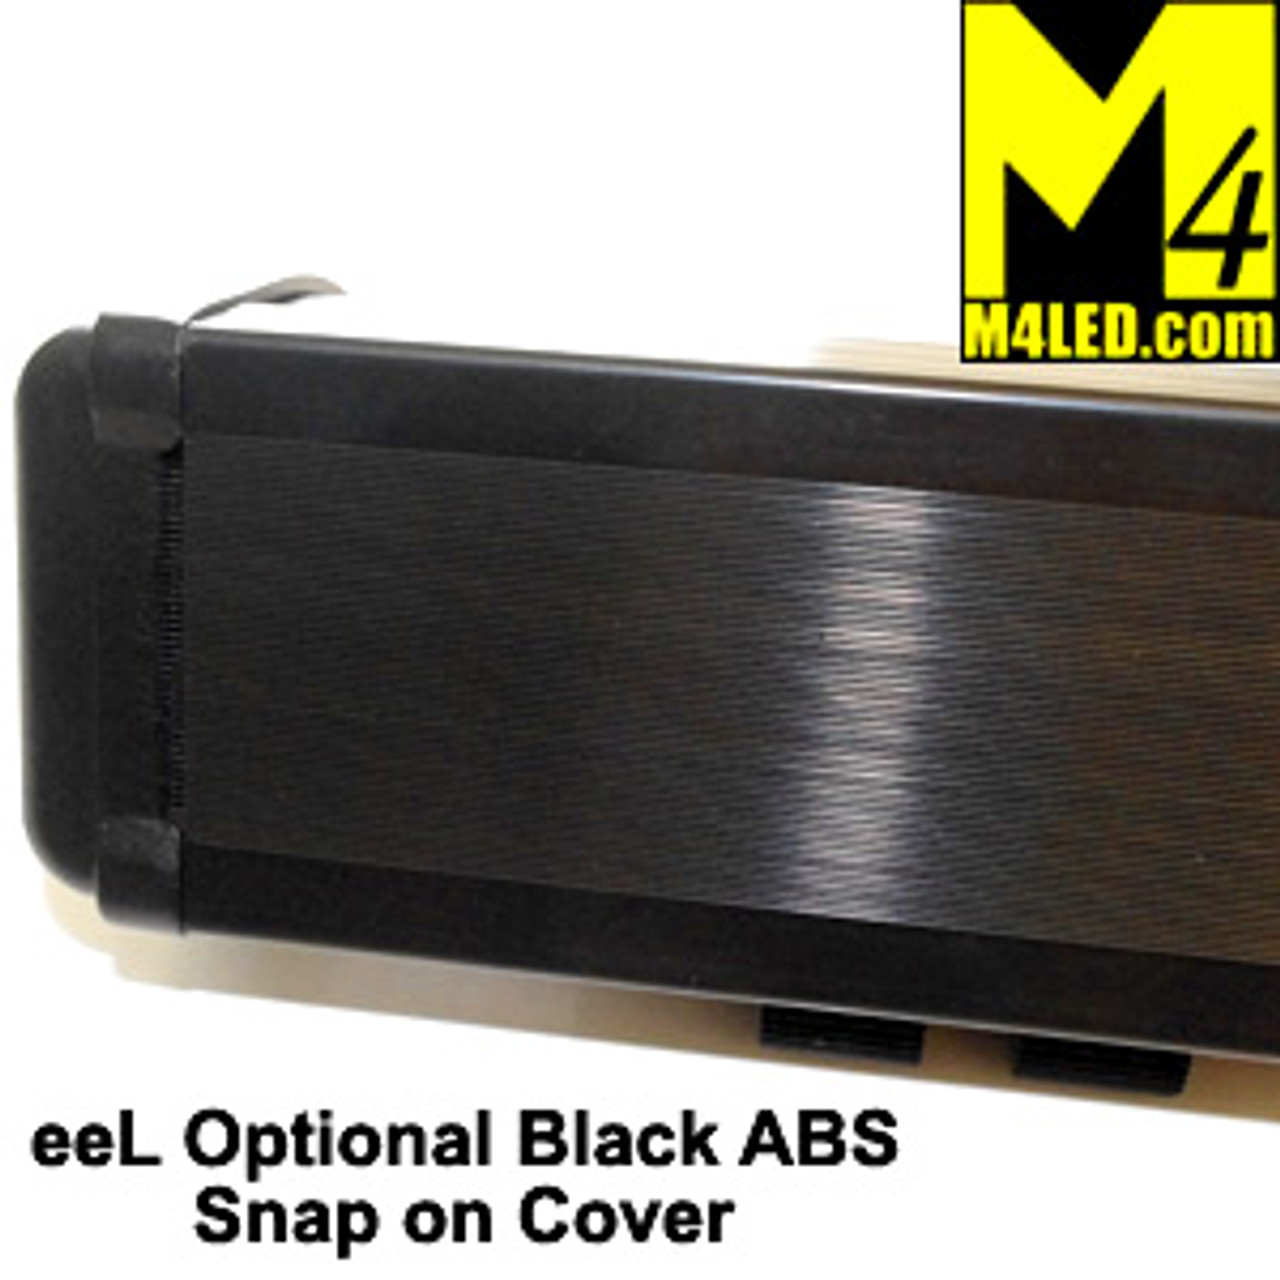 Black ABS Light Cover for M4 eeL160 Light Bars 28.125""